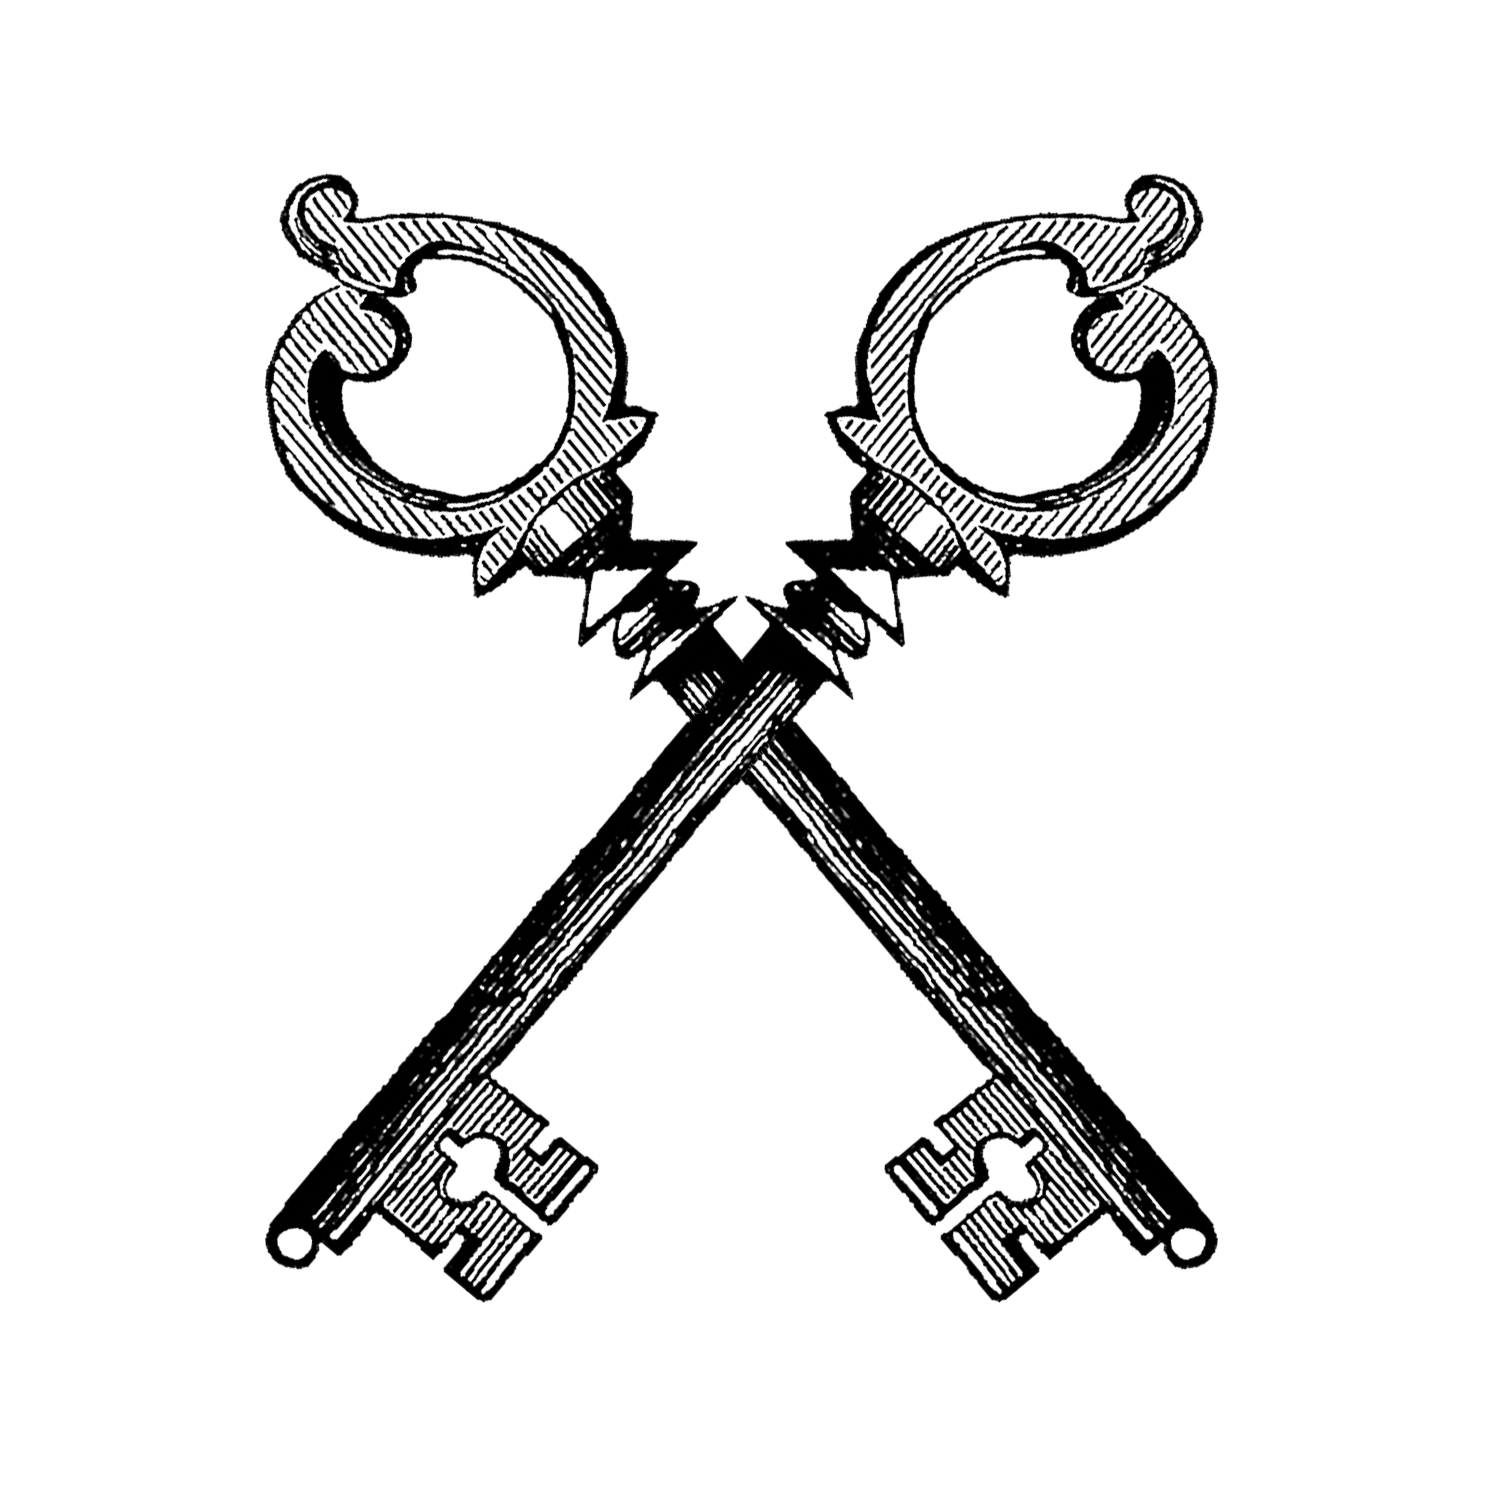 New FREE Resource: The Master Key System